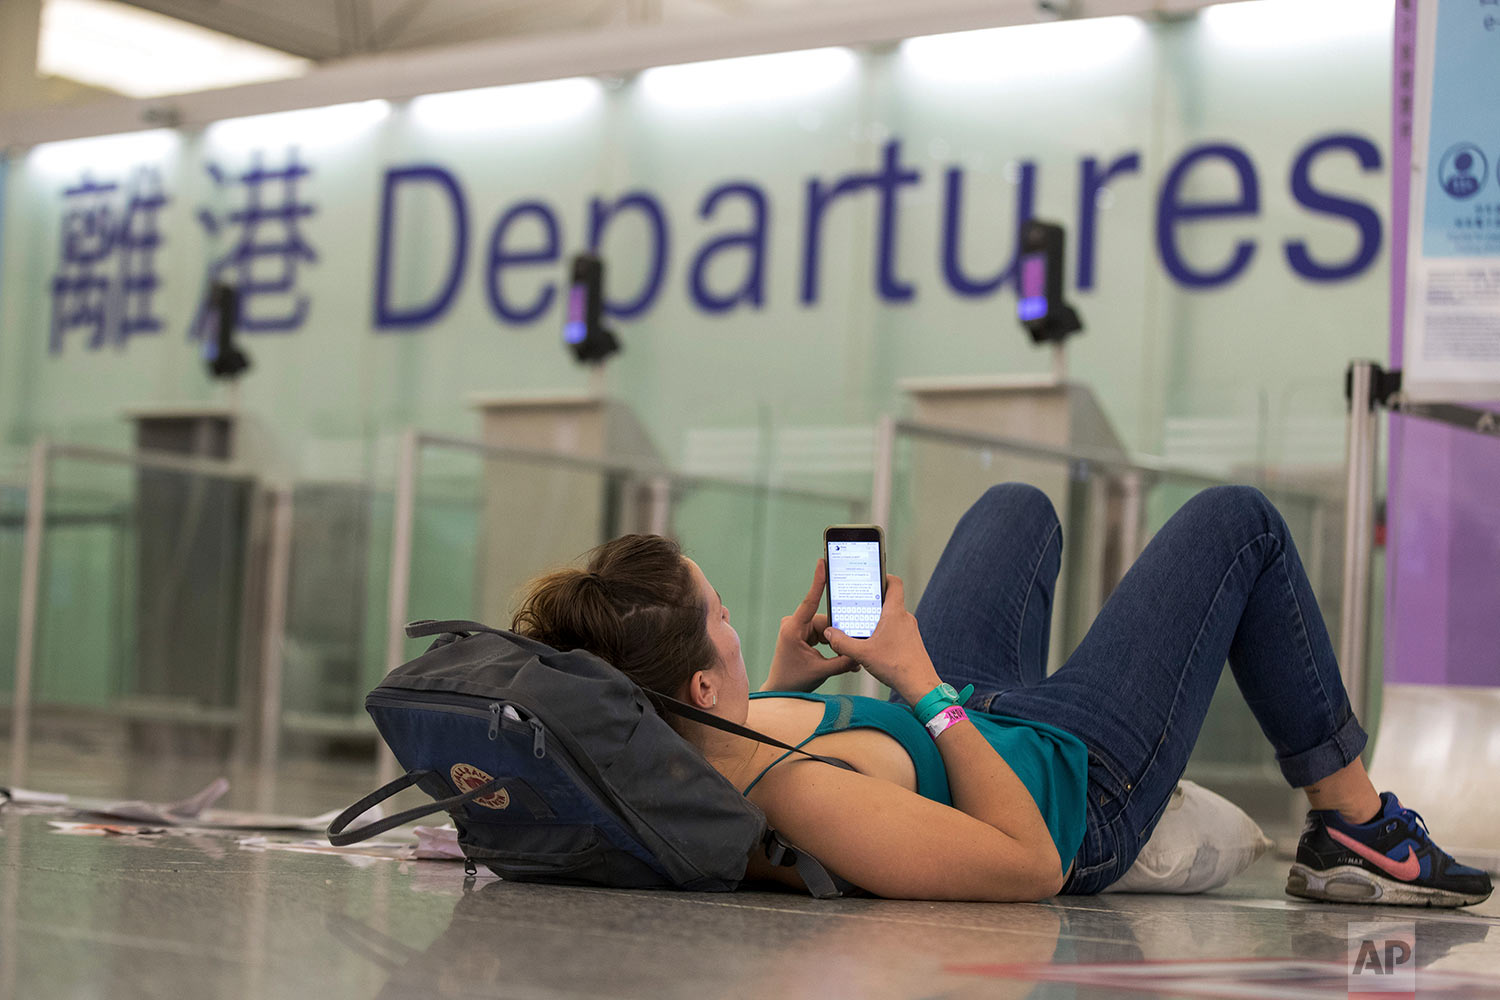 A traveler leans on her bag while browsing her smartphone at the departure hall of the Hong Kong International airport on Aug. 12, 2019. (AP Photo/Vincent Thian)